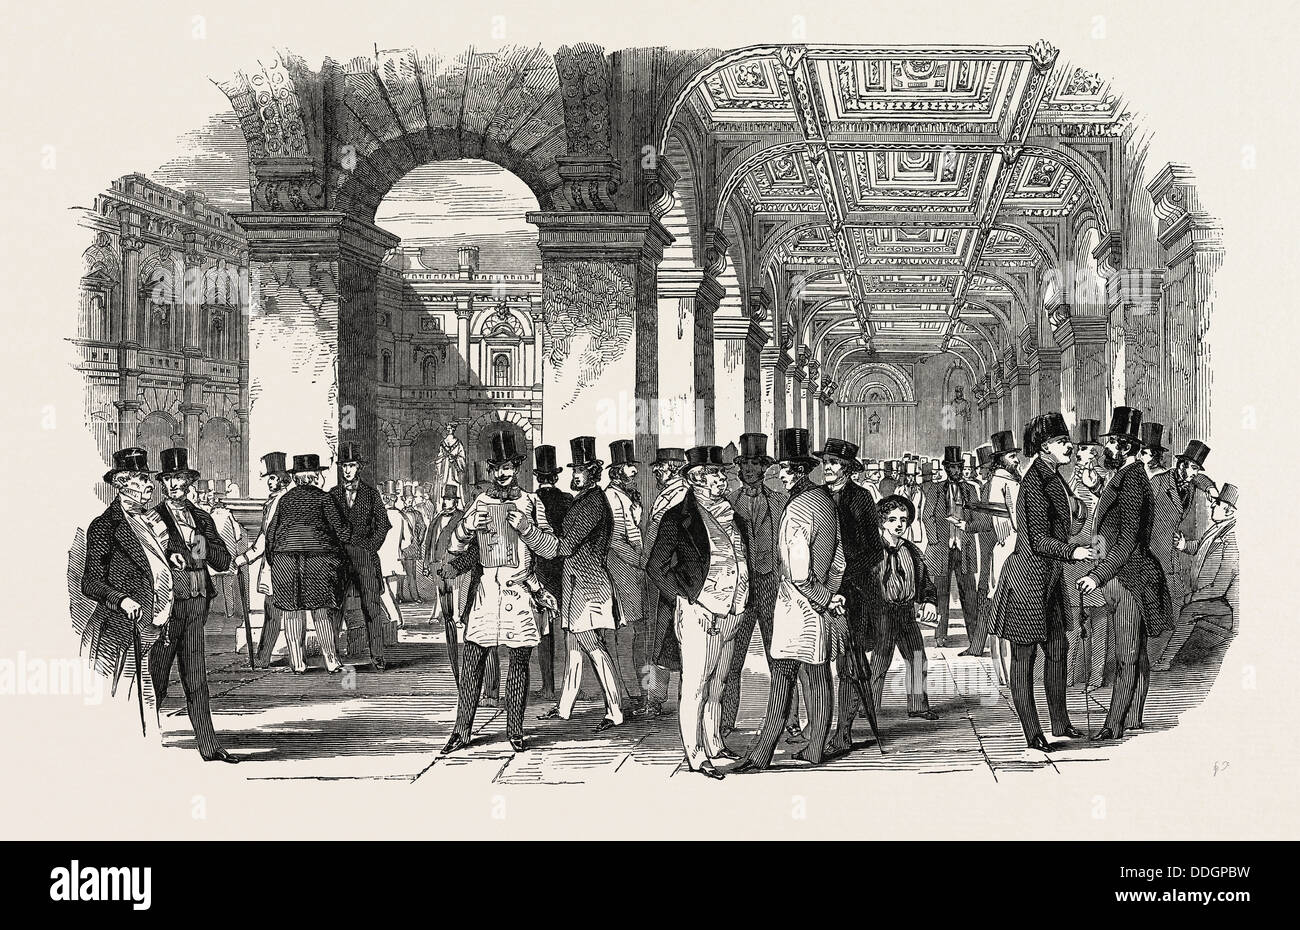 THE MERCHANTS' WALK (SOUTH WEST ANGLE), ROYAL EXCHANGE. UK, 1847 Stock Photo